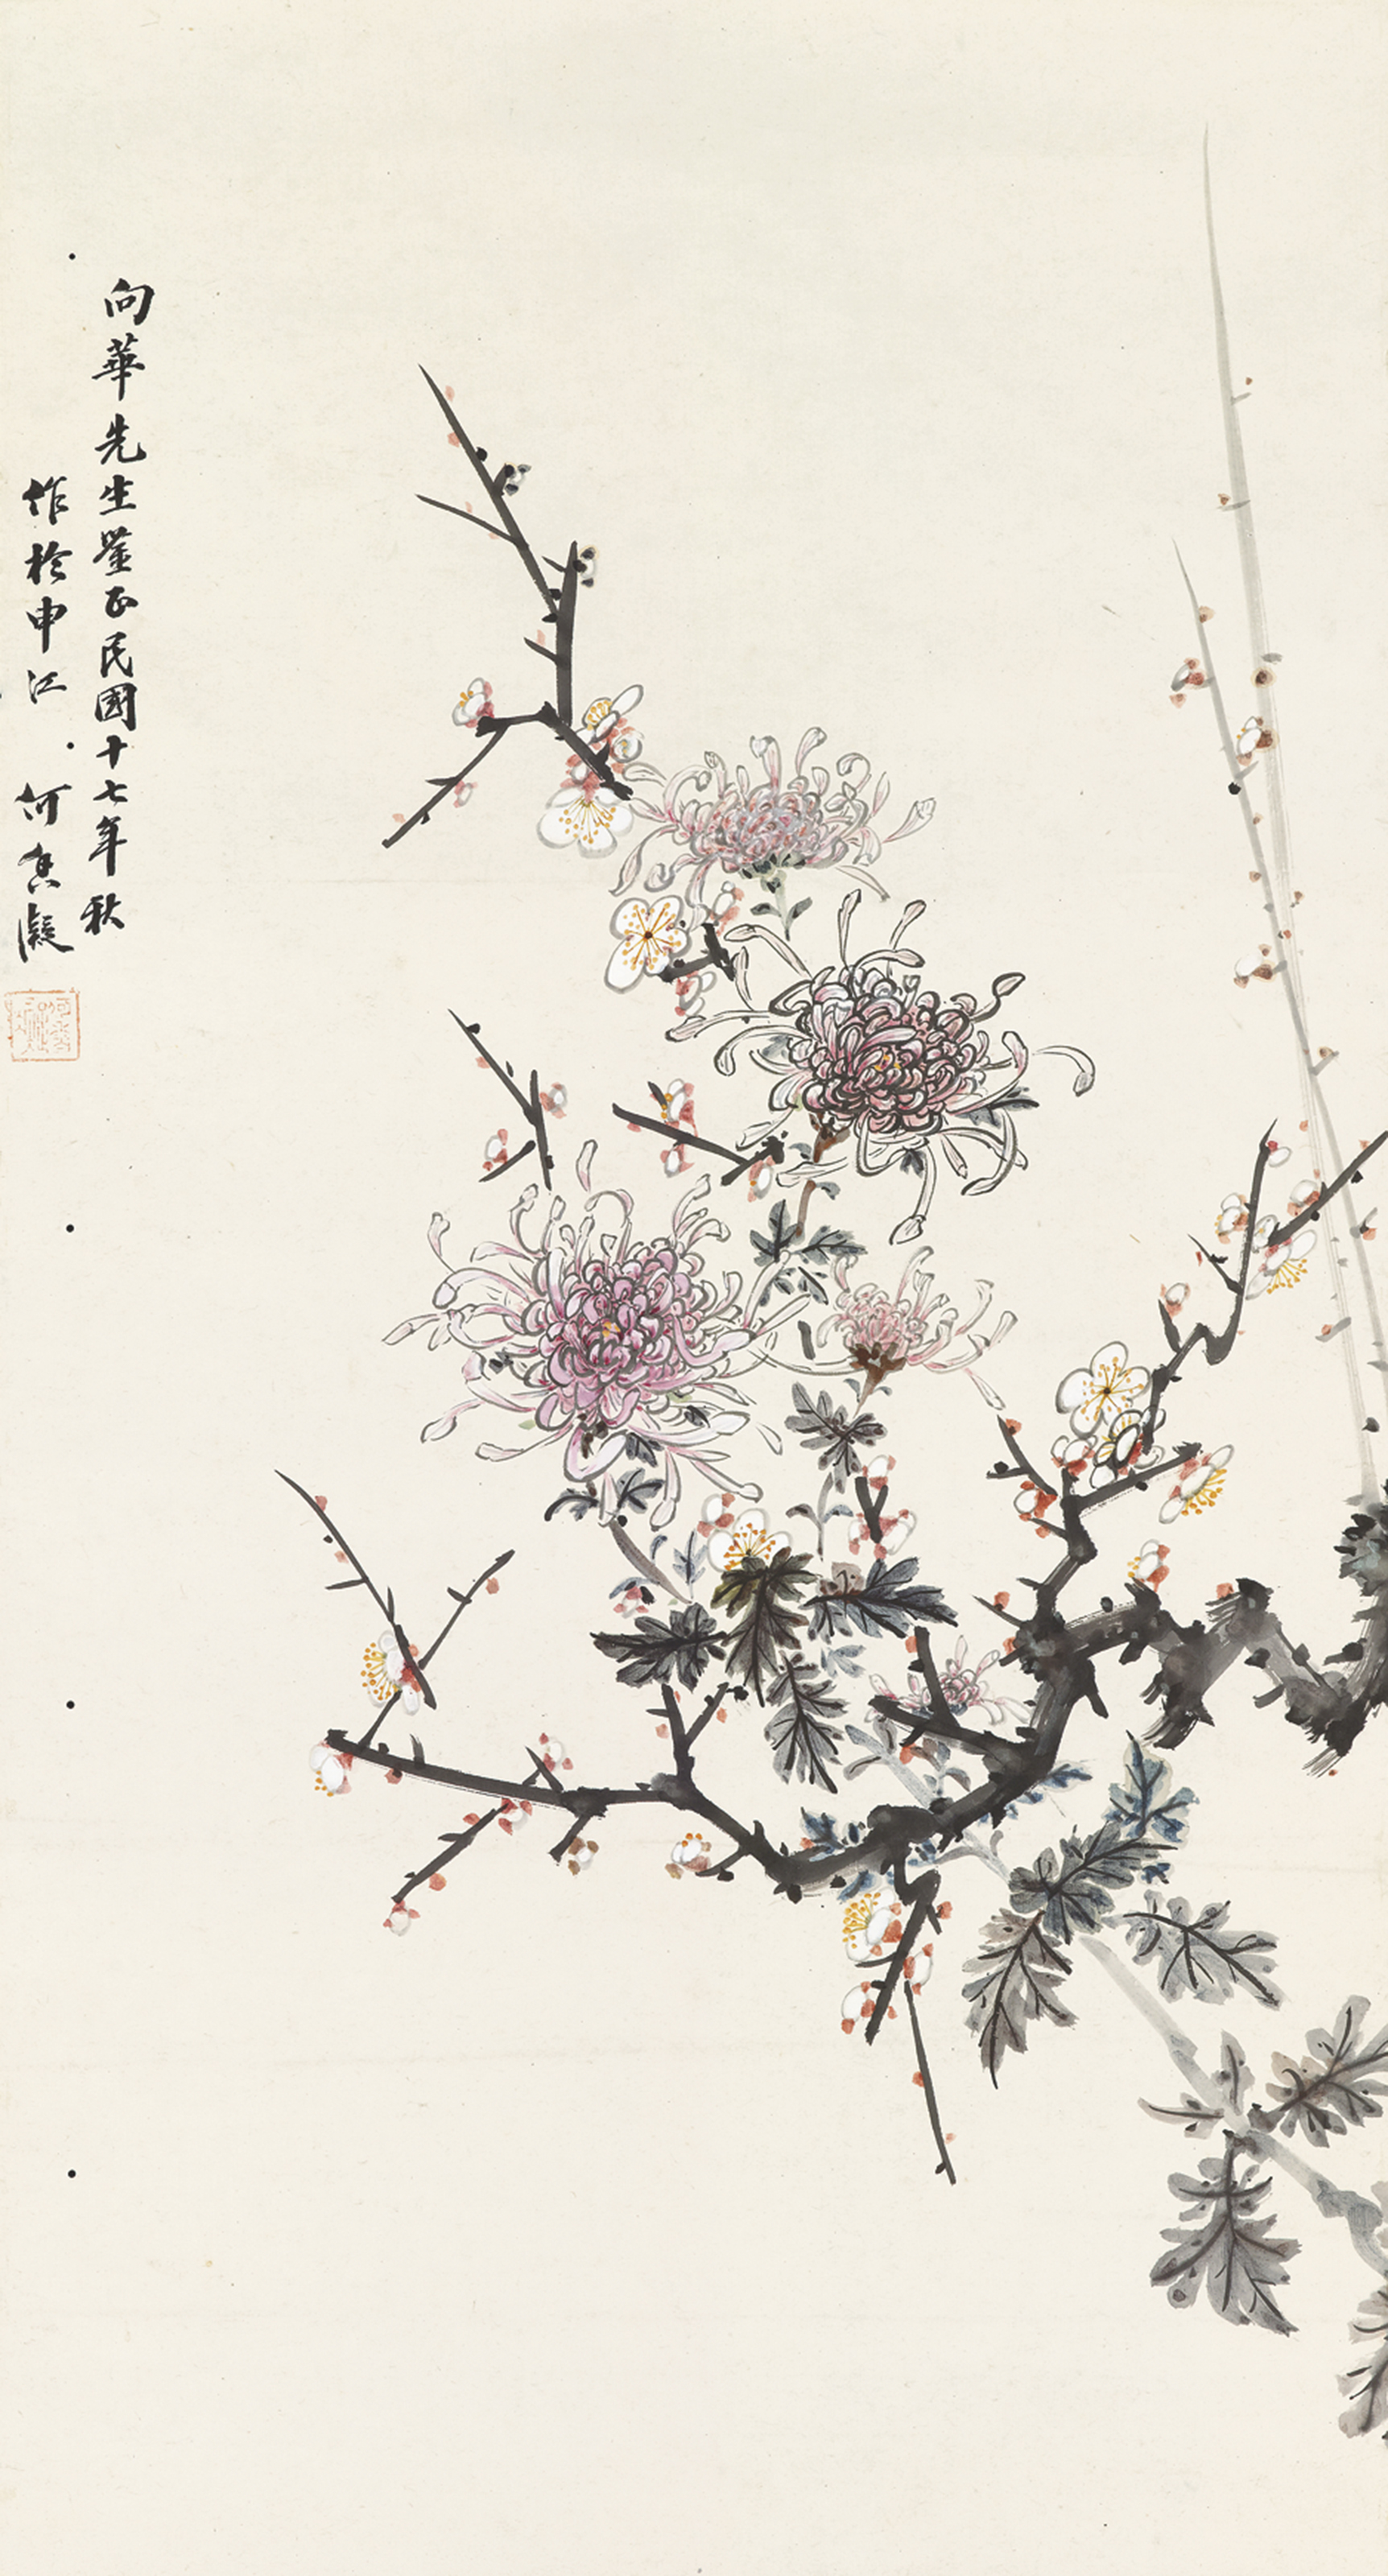 Plum Blossoms and Chrysanthemums